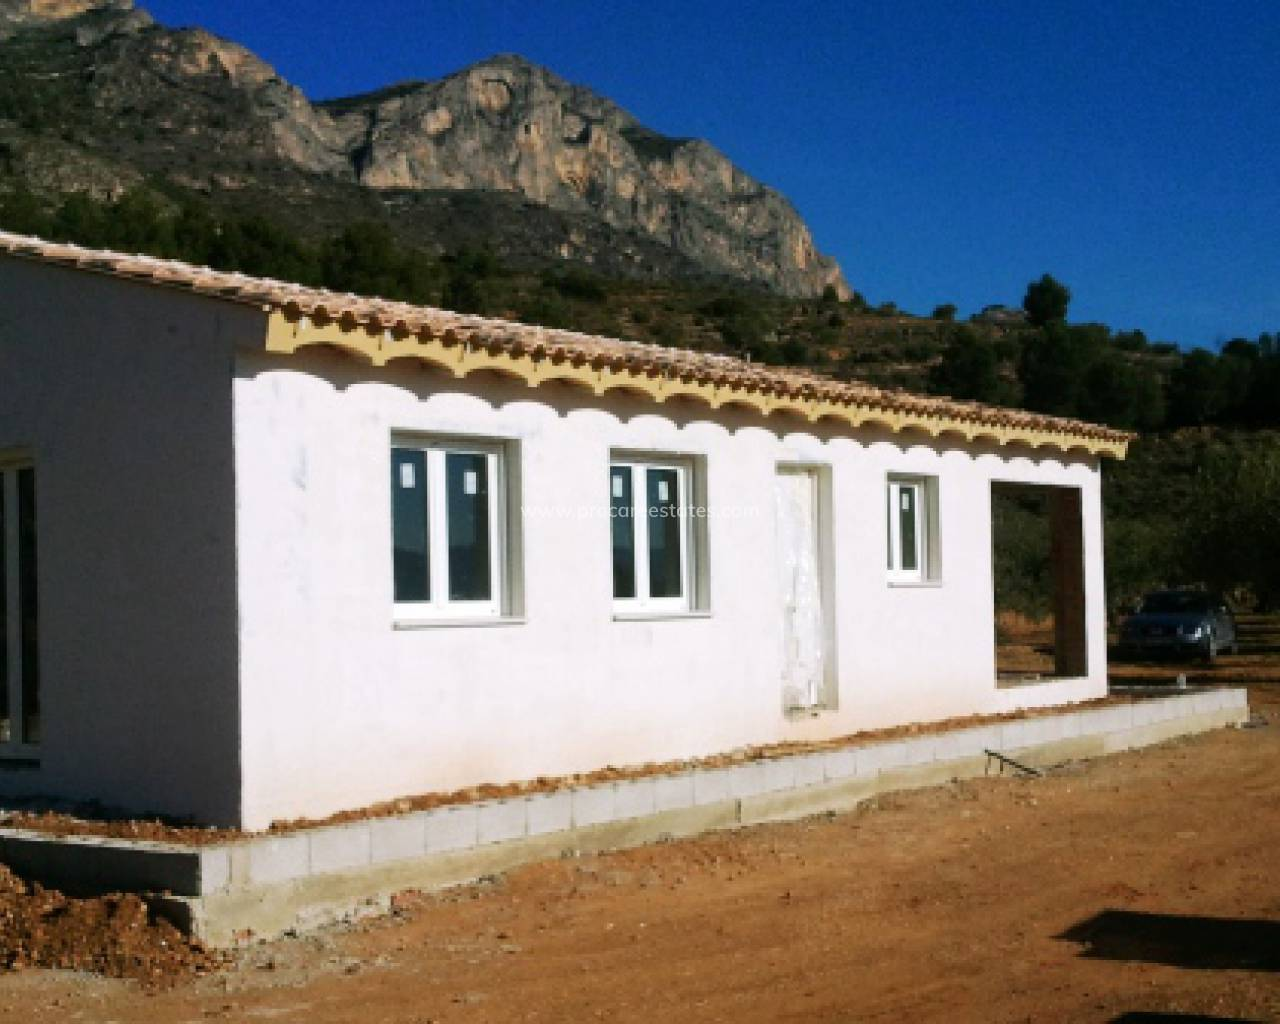 Country Property - Nouvelle construction - Gaianes - Gaianes